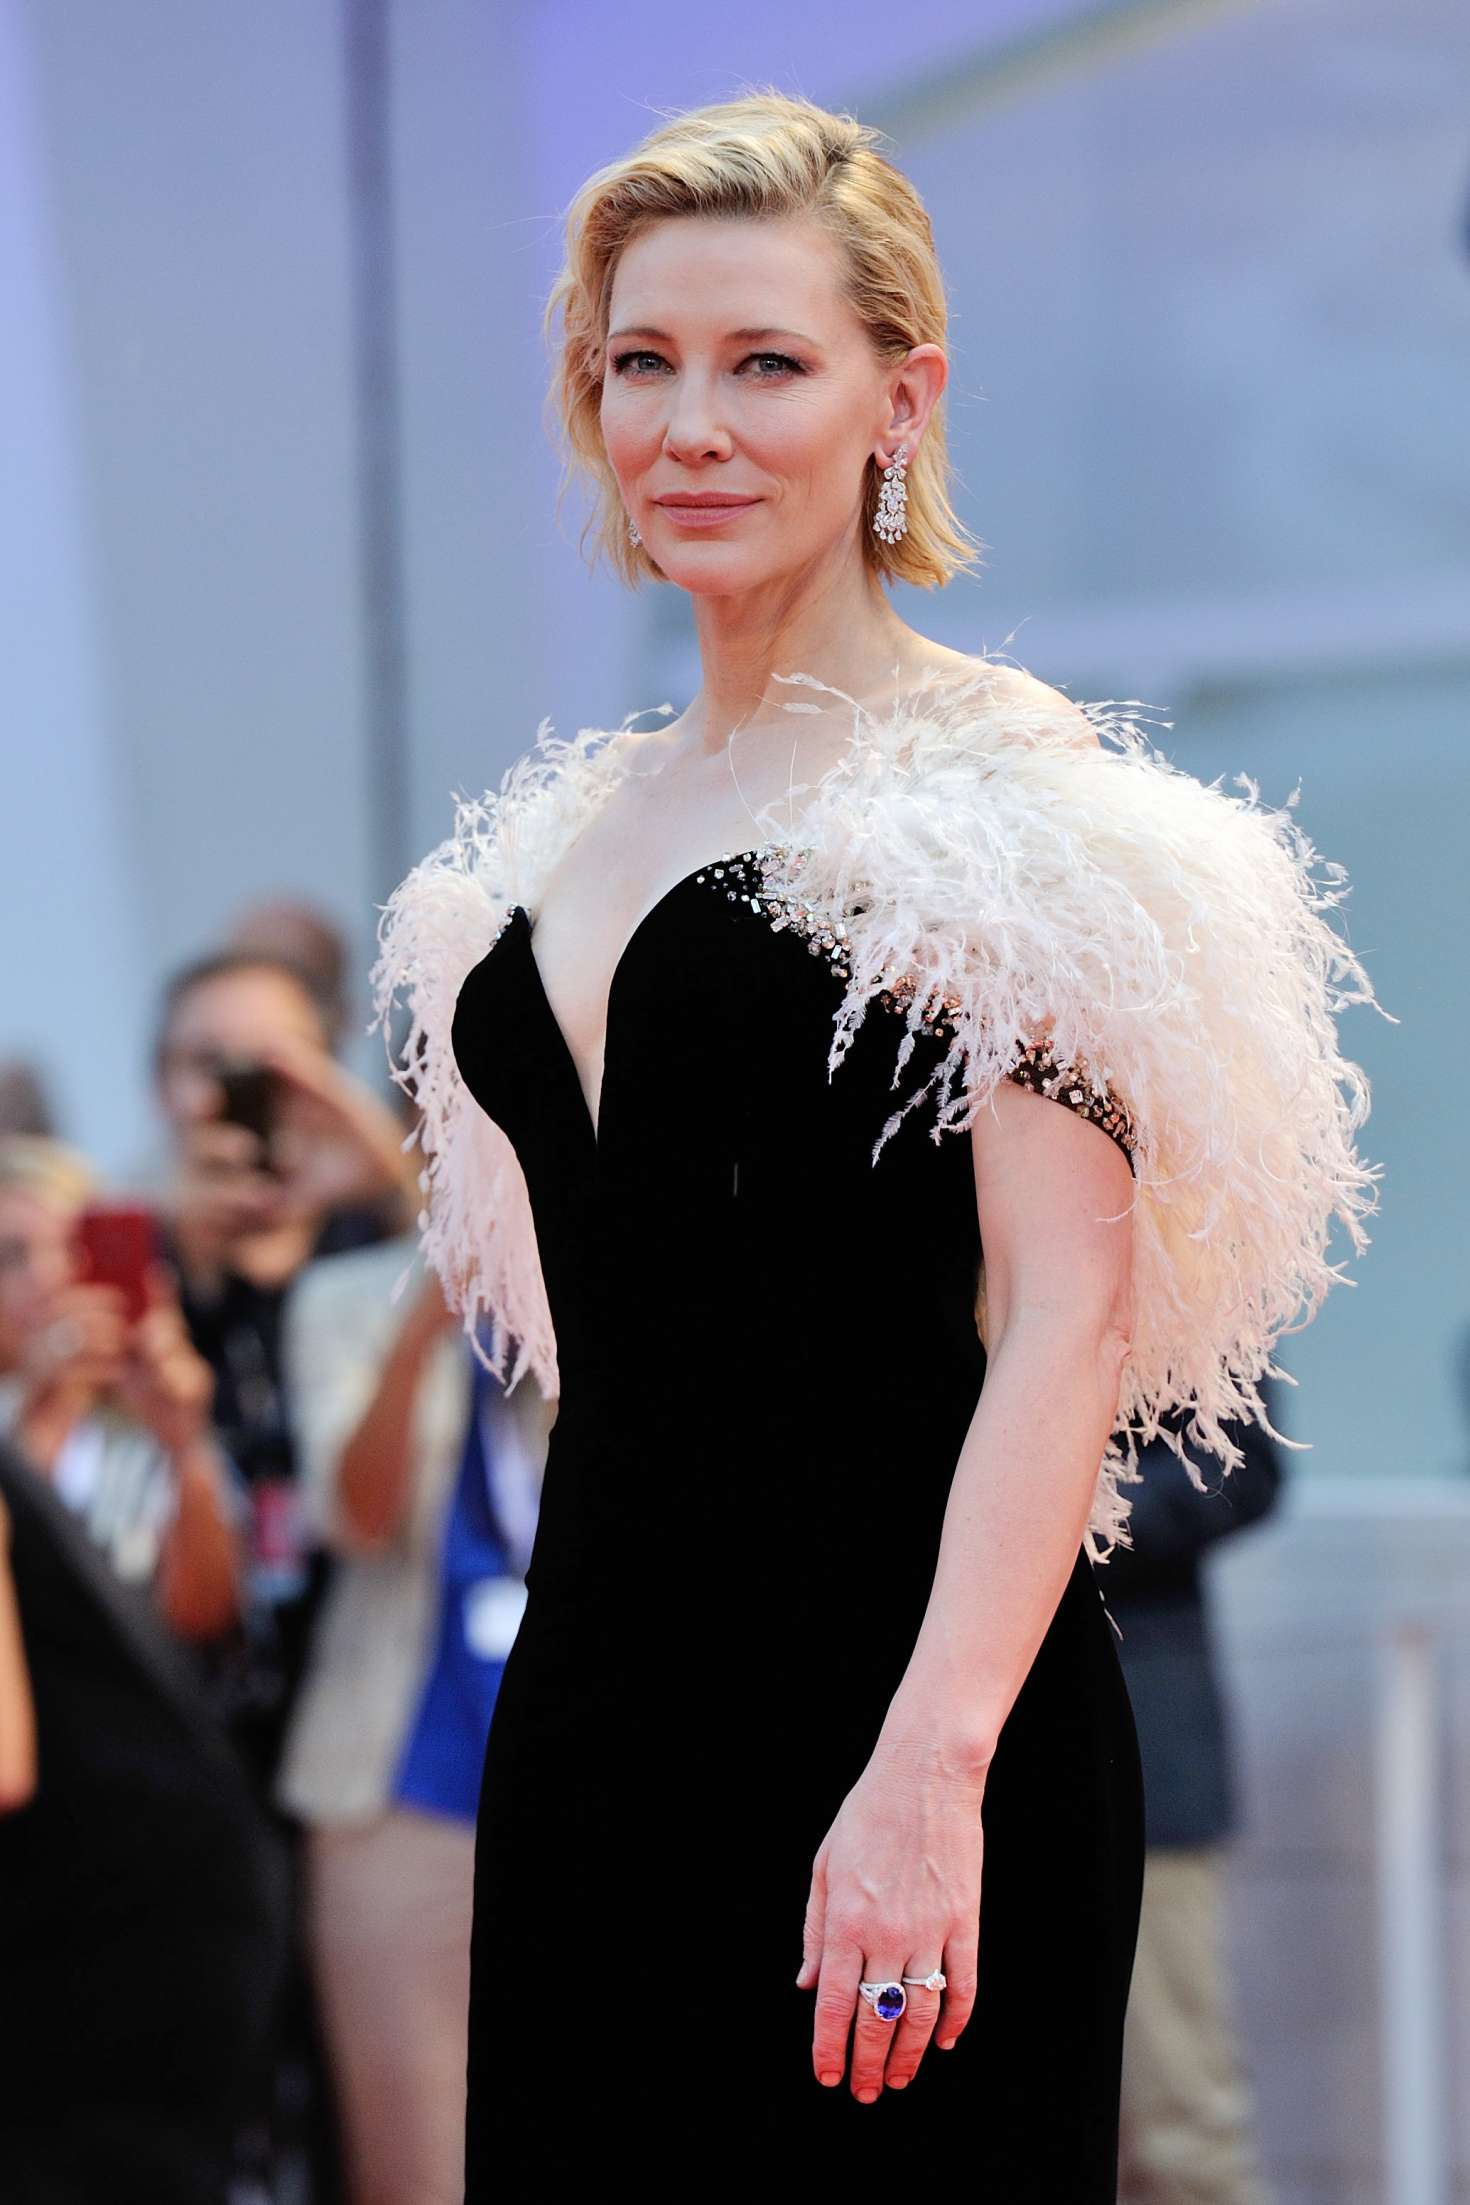 Cate Blanchett - 'A Star Is Born' Premiere at 2018 Venice International Film Festival in Venice